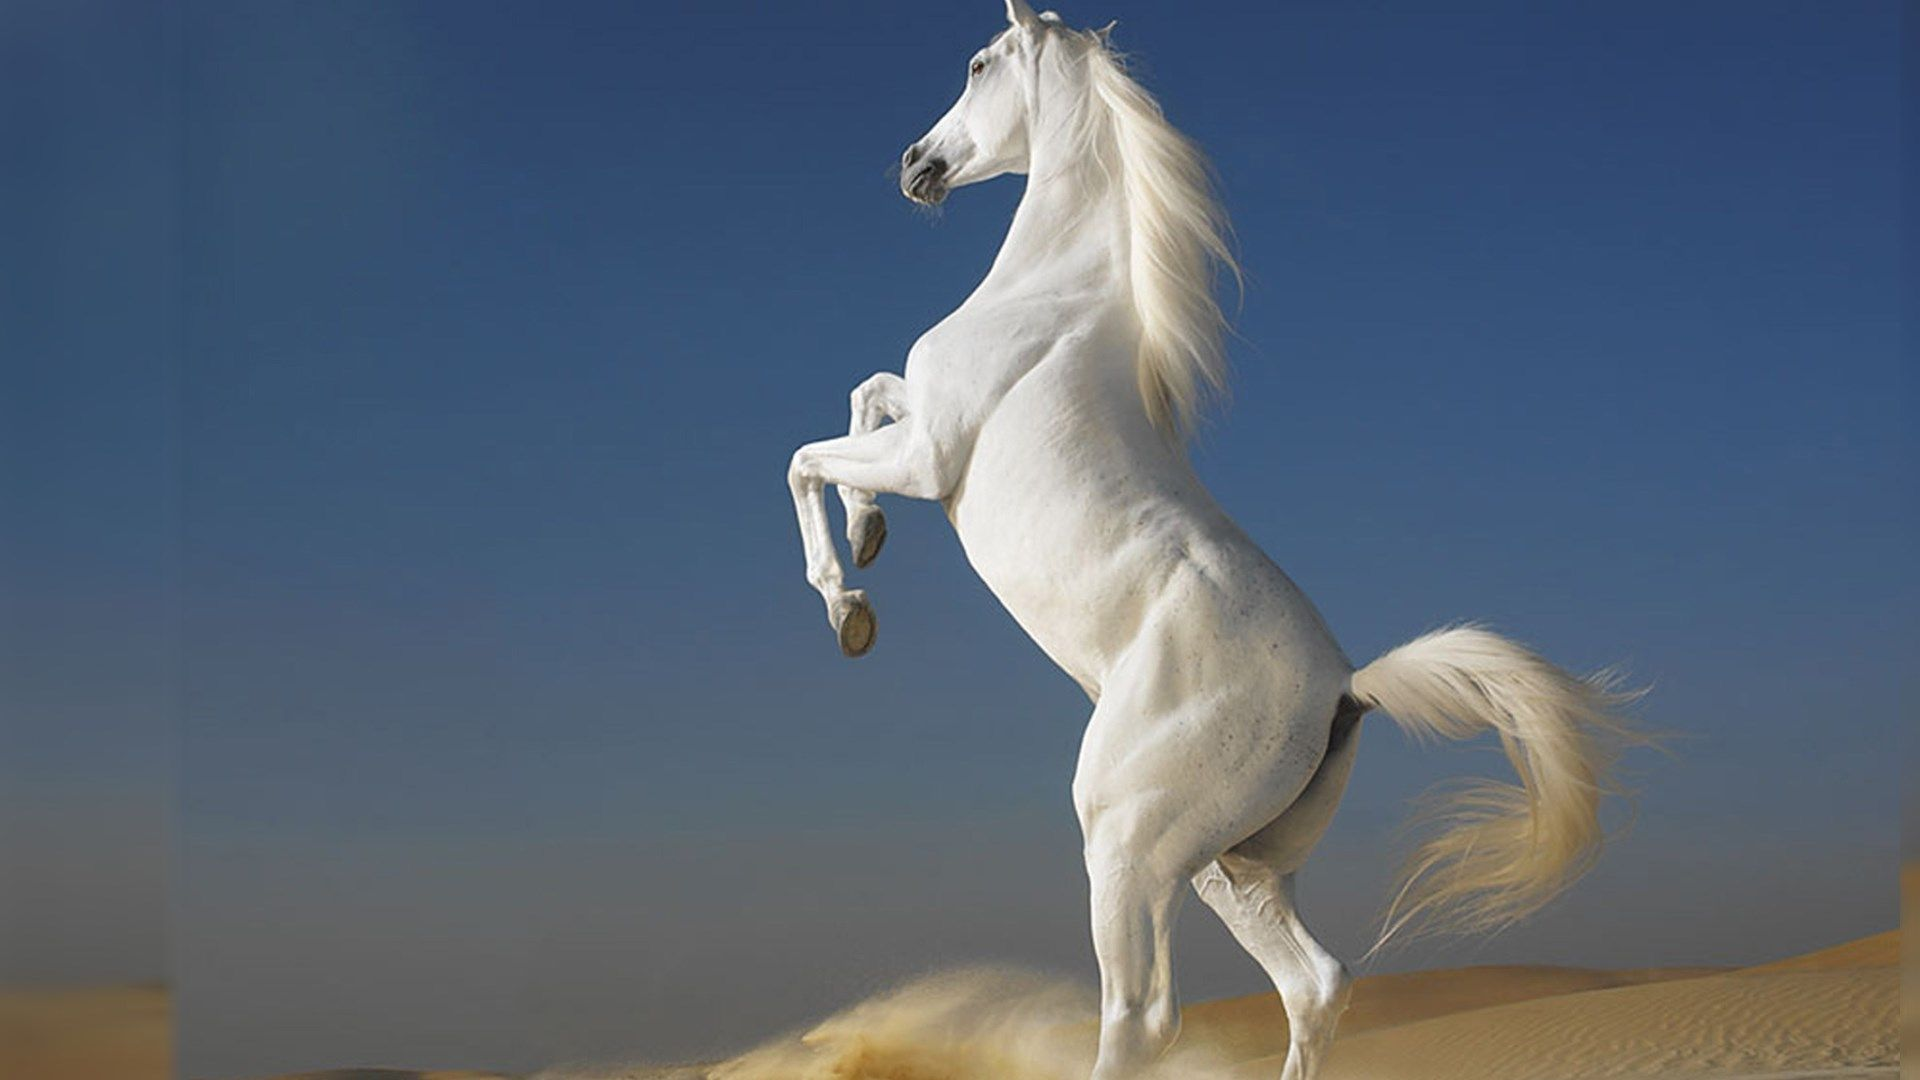 White Horse Best Hd Desktop Wallpapers Free Horse Wallpaper Wild Horse Pictures Beautiful Horse Pictures